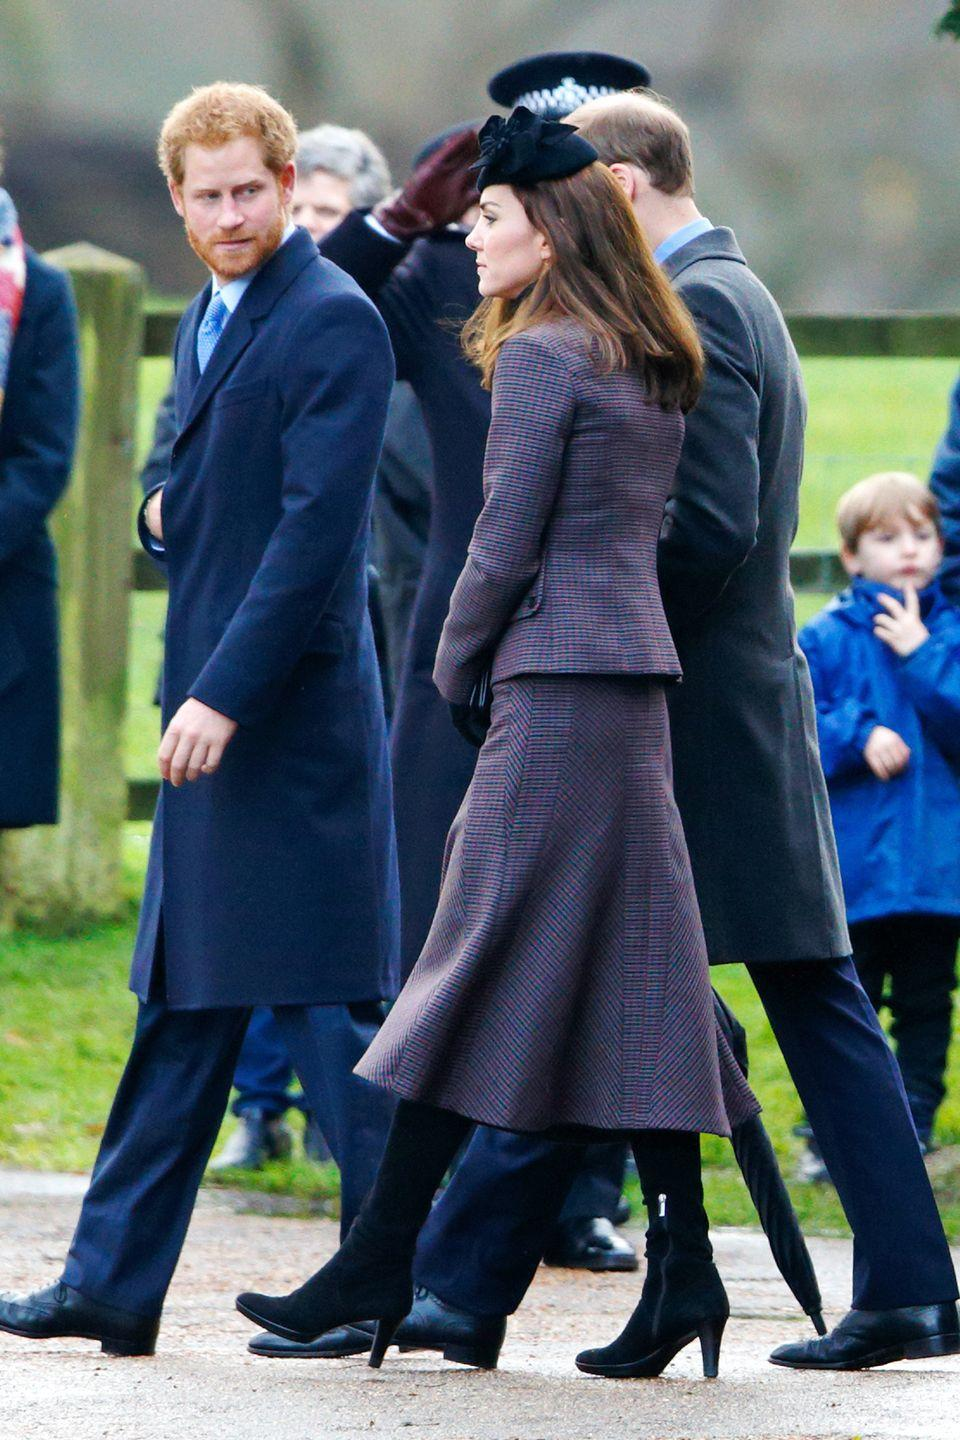 <p>The Duchess attended a post-Christmas service at St. Mary Magdalene Church in a sophisticated, tweed suit by Michael Kors, adding a royal blue hat and gloves to complete the look.</p>